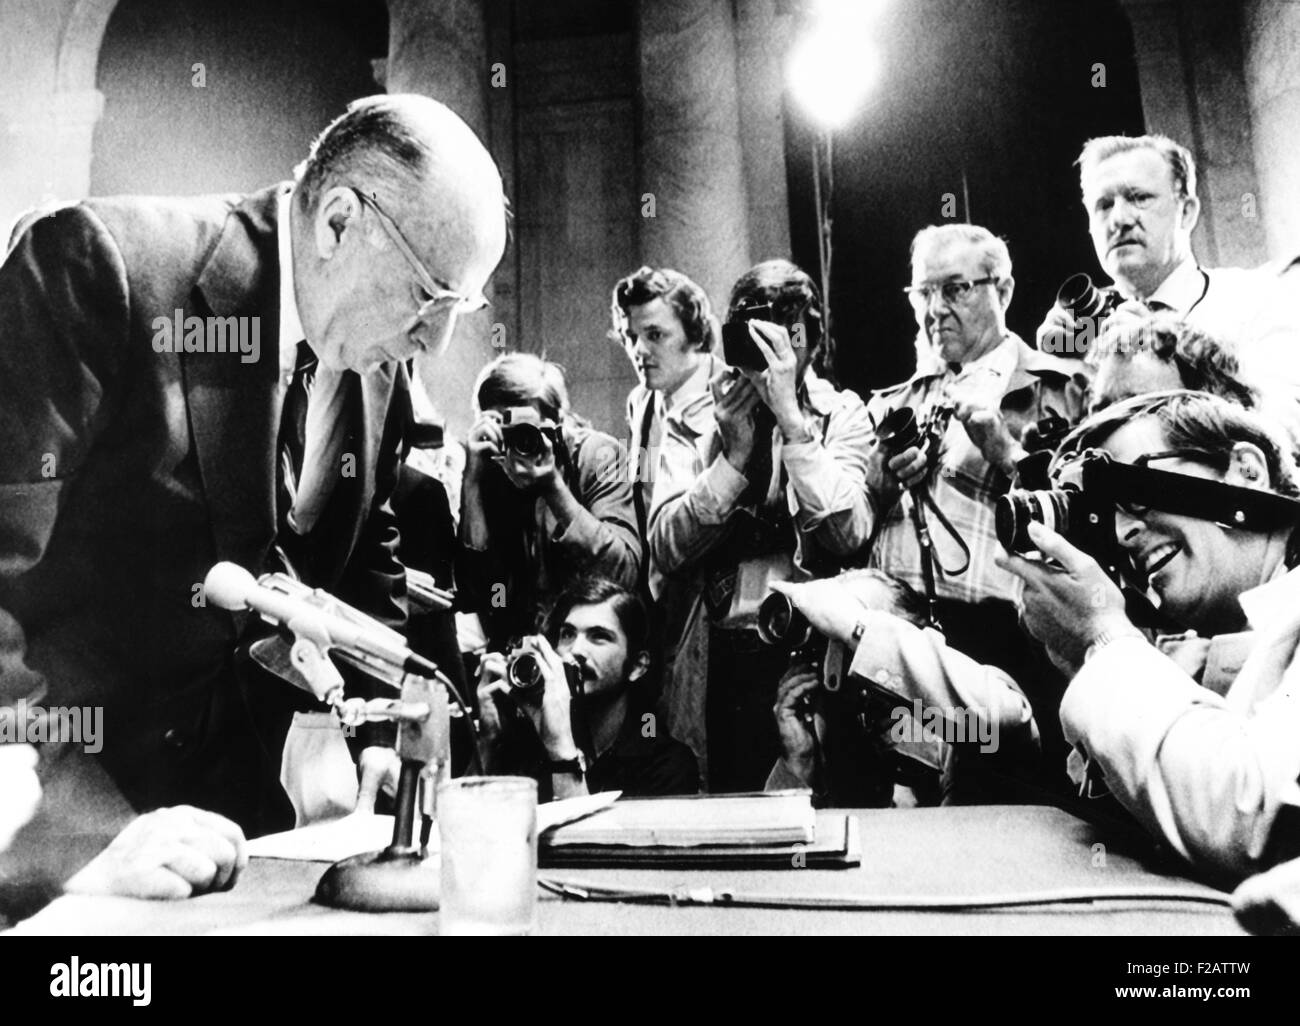 Former Atty. Gen. John Mitchell surrounded by photographers at Watergate hearings. July 10, 1973. He testified that - Stock Image